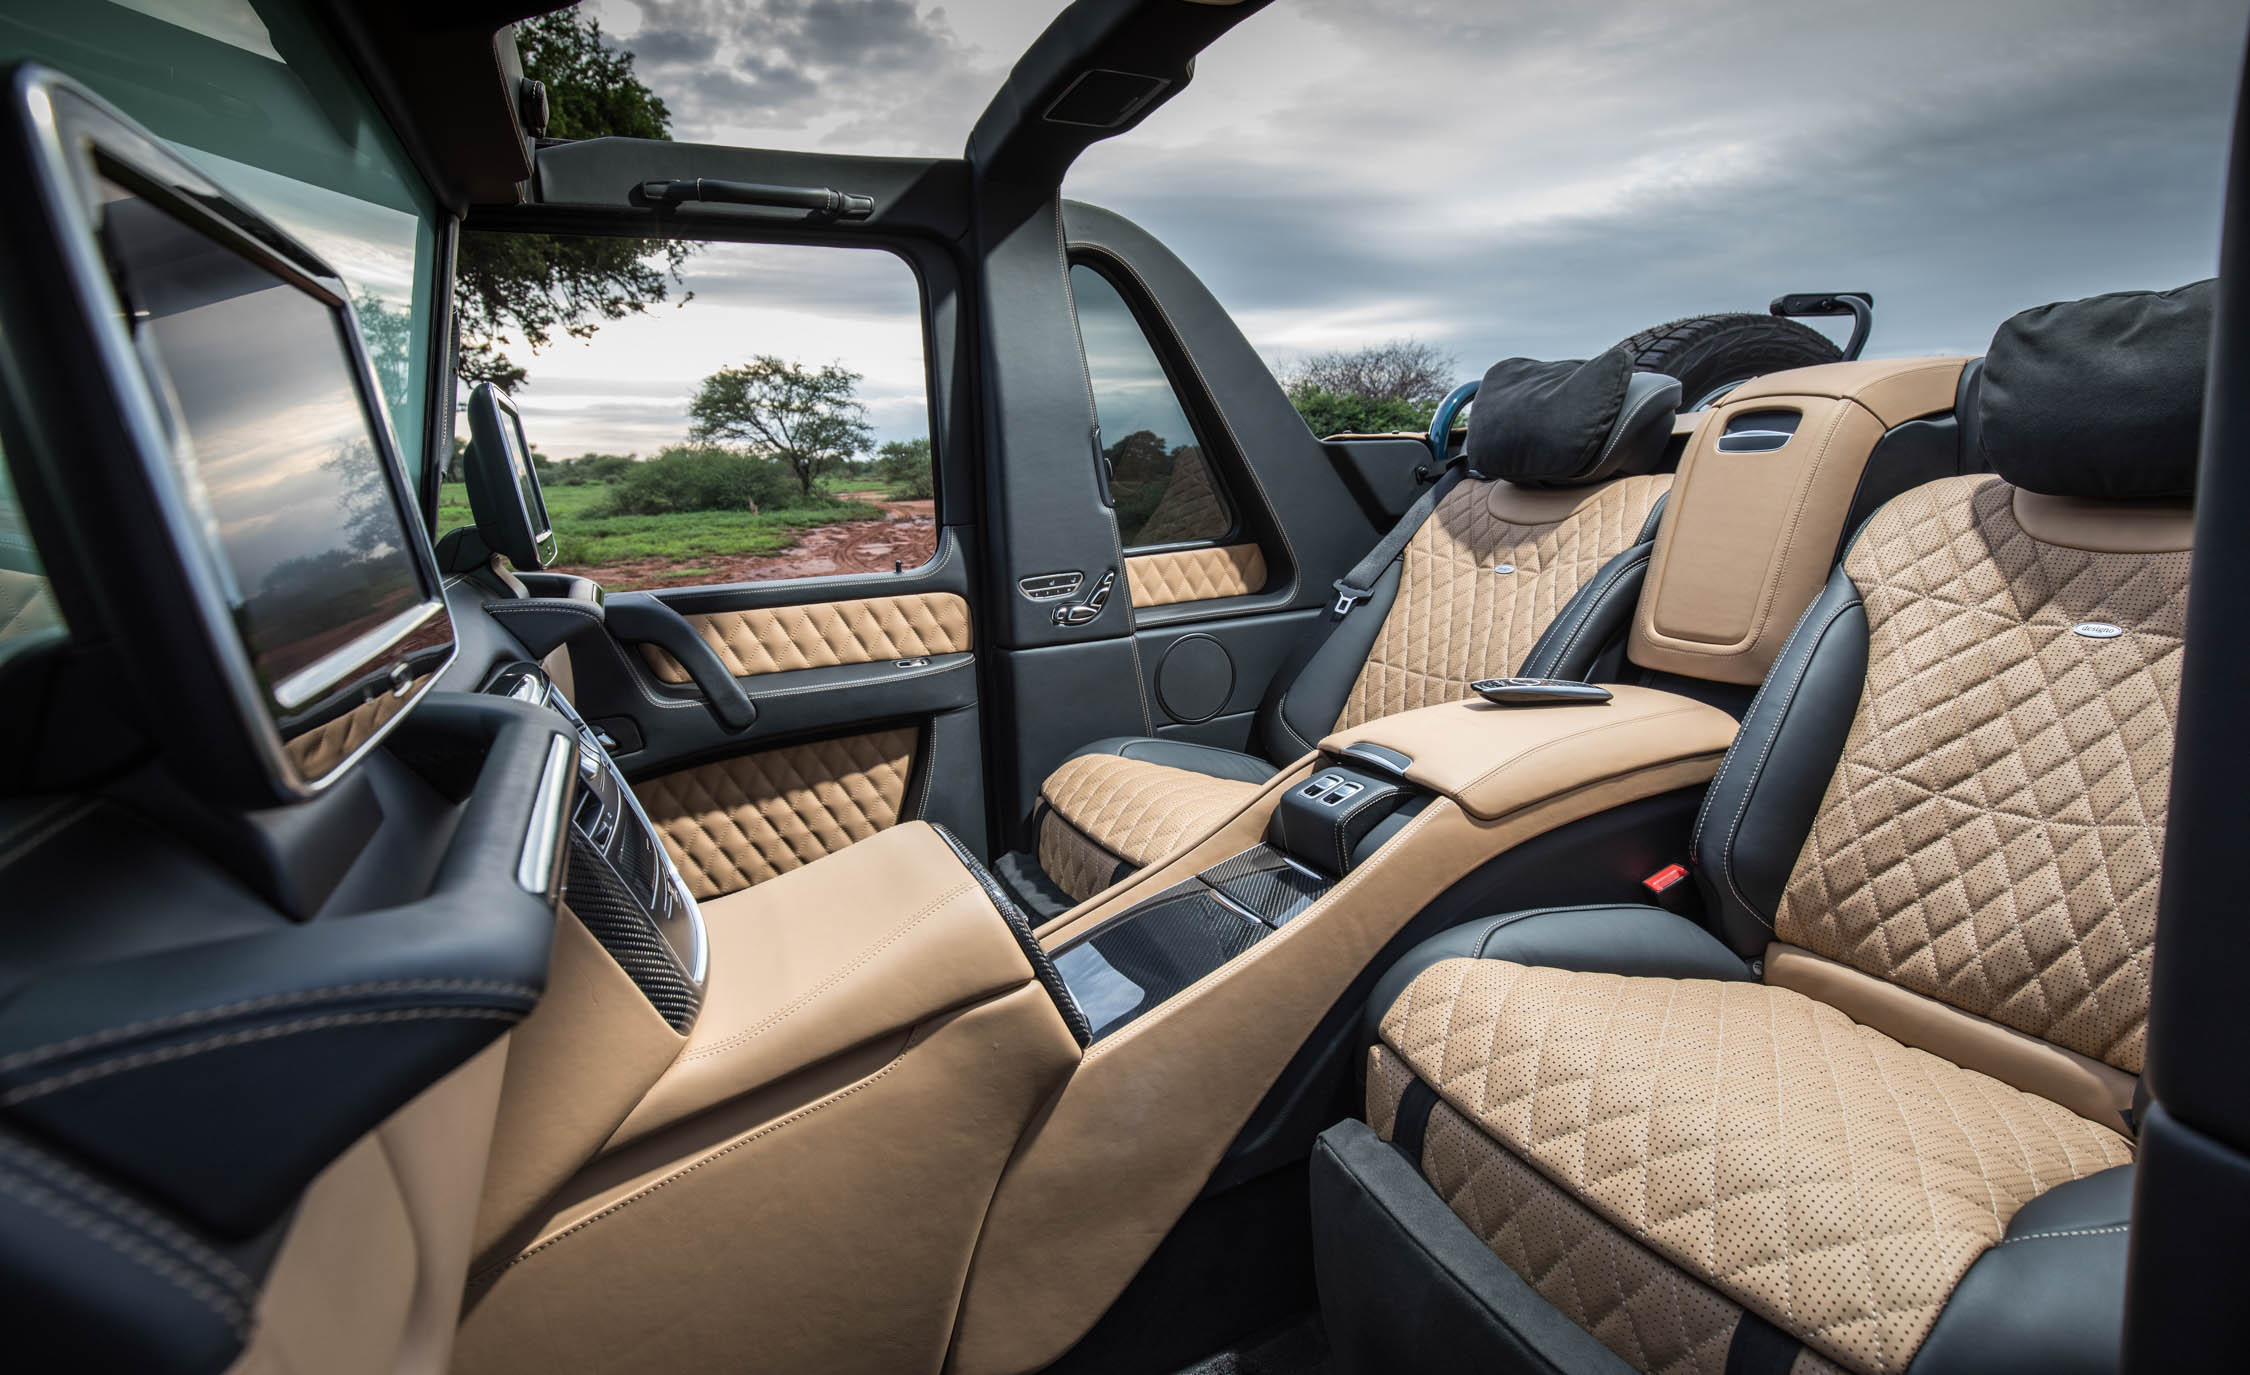 2018 Mercedes Maybach G650 Landaulet Interior Seats Rear (Photo 22 of 52)